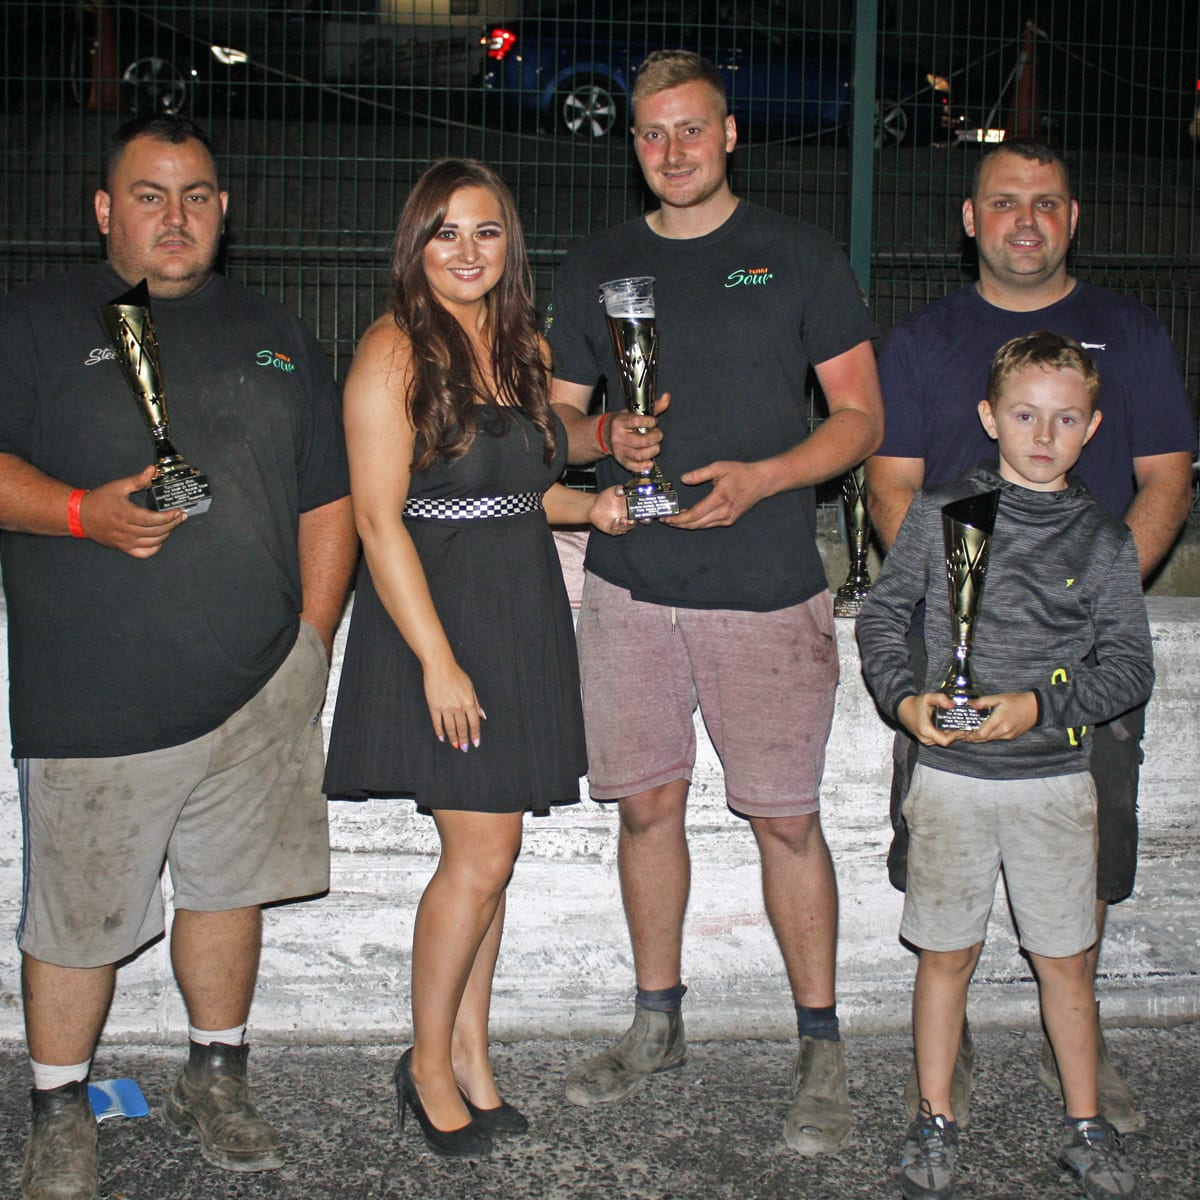 Team Sour A Won the Unlimited National Bangers Teams Championship, Stevo McGrath (left), Adam Maxwell (centre) and Paul Gaffney (right) pictured receiving their trophies